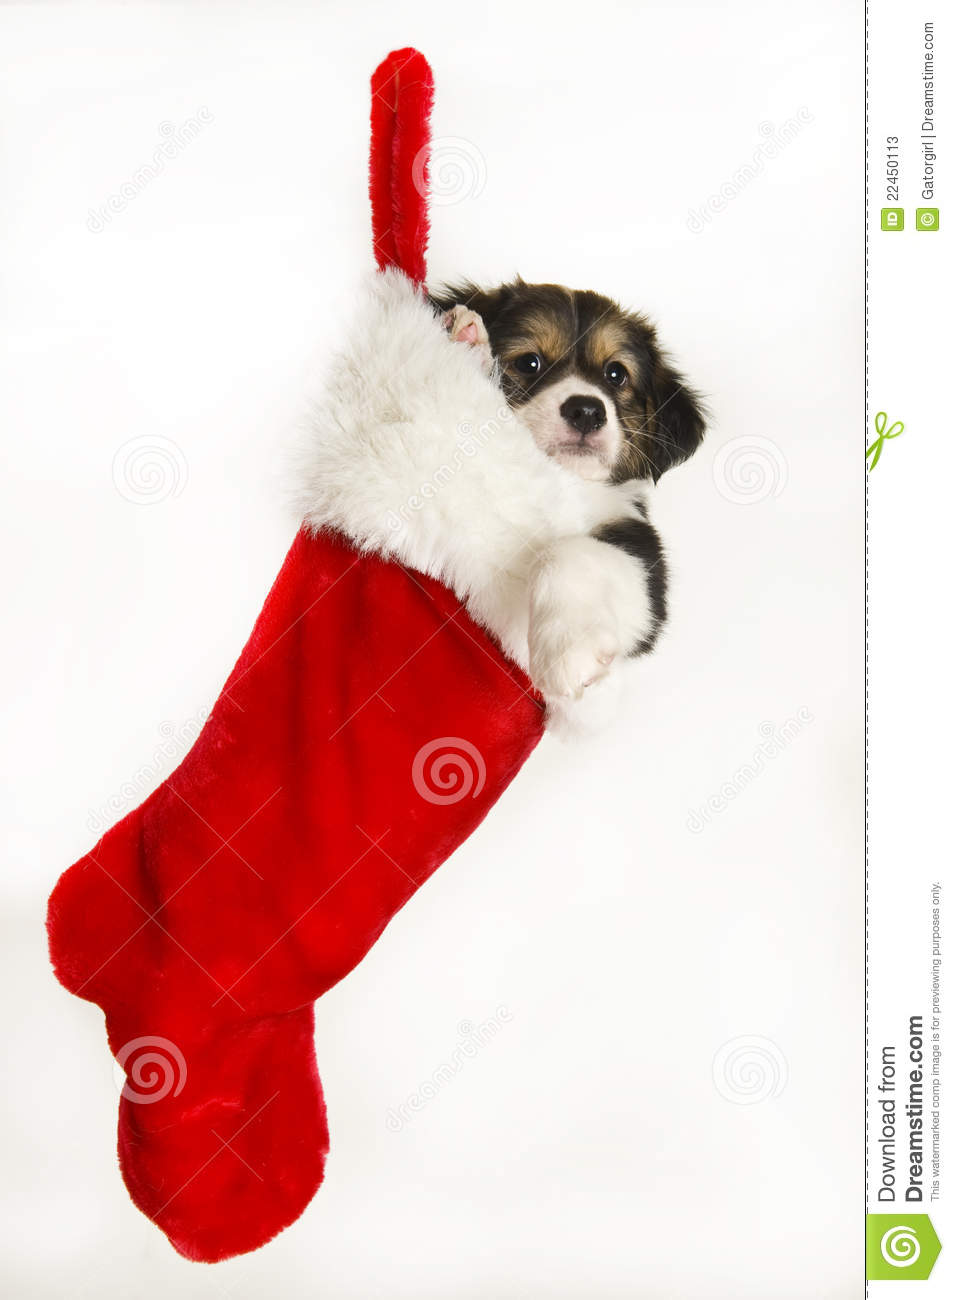 Cute Puppy In Christmas Stocking Hanging Stock Photos